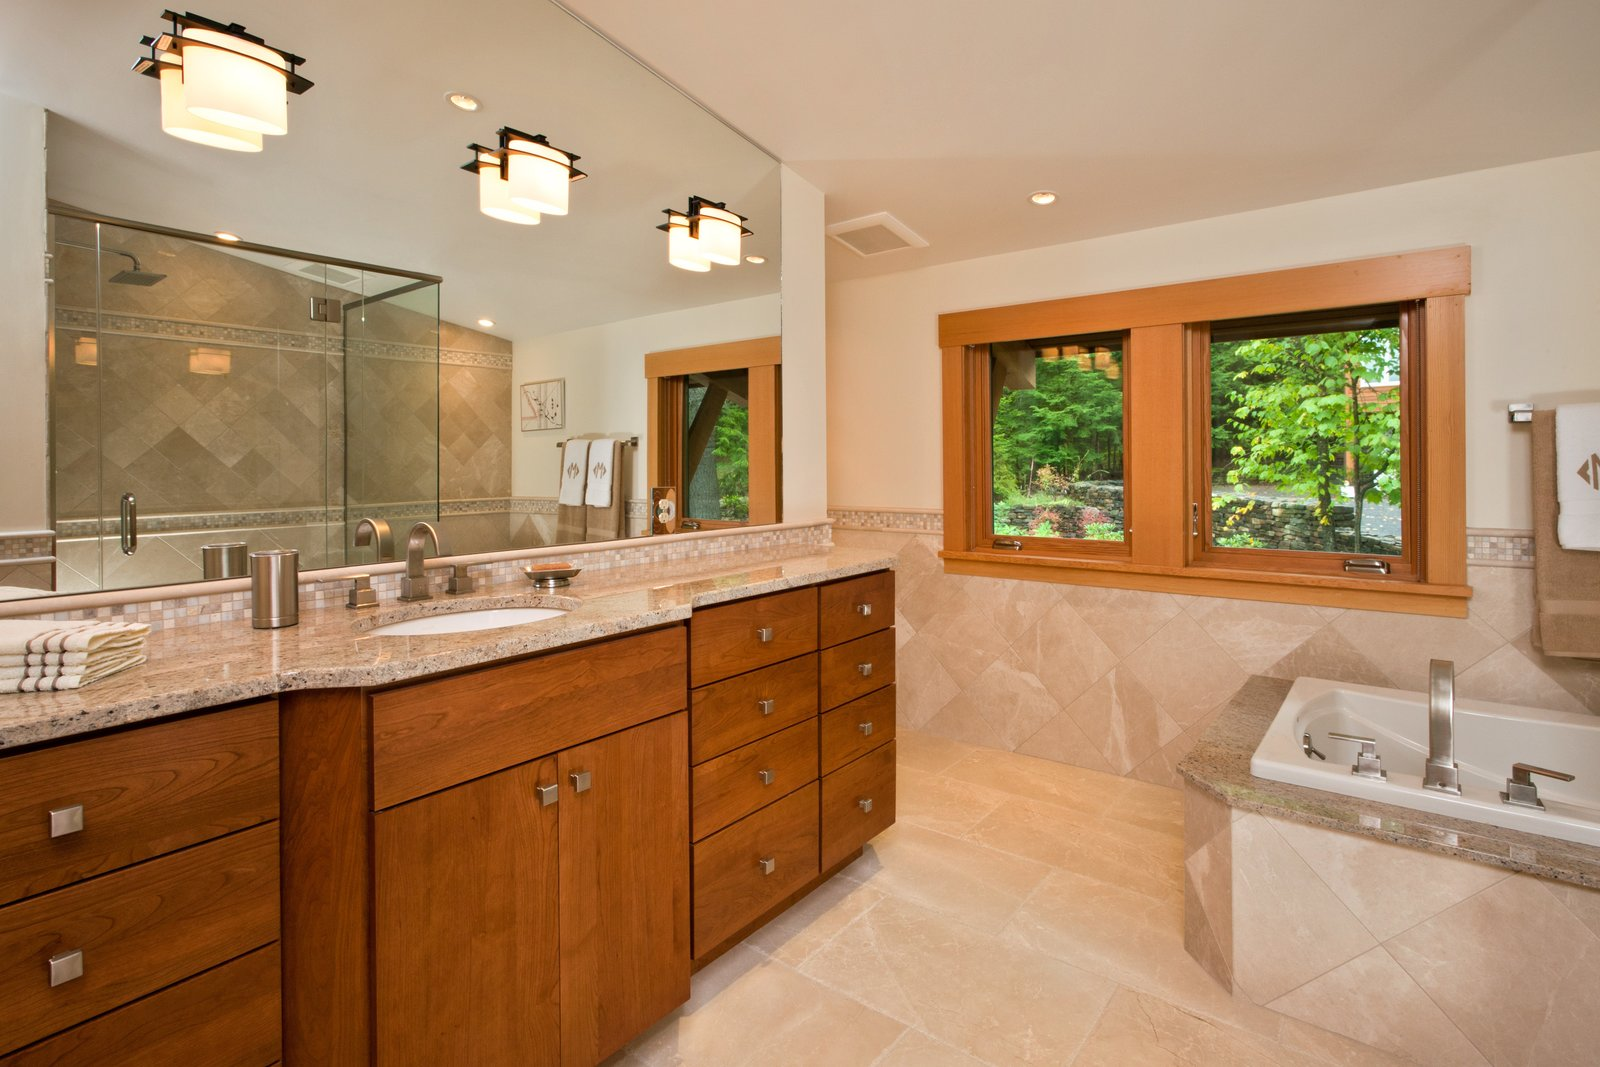 Master bathroom, Lake Luzerne, NY  Fourth Lake Summer House by Phinney Design Group